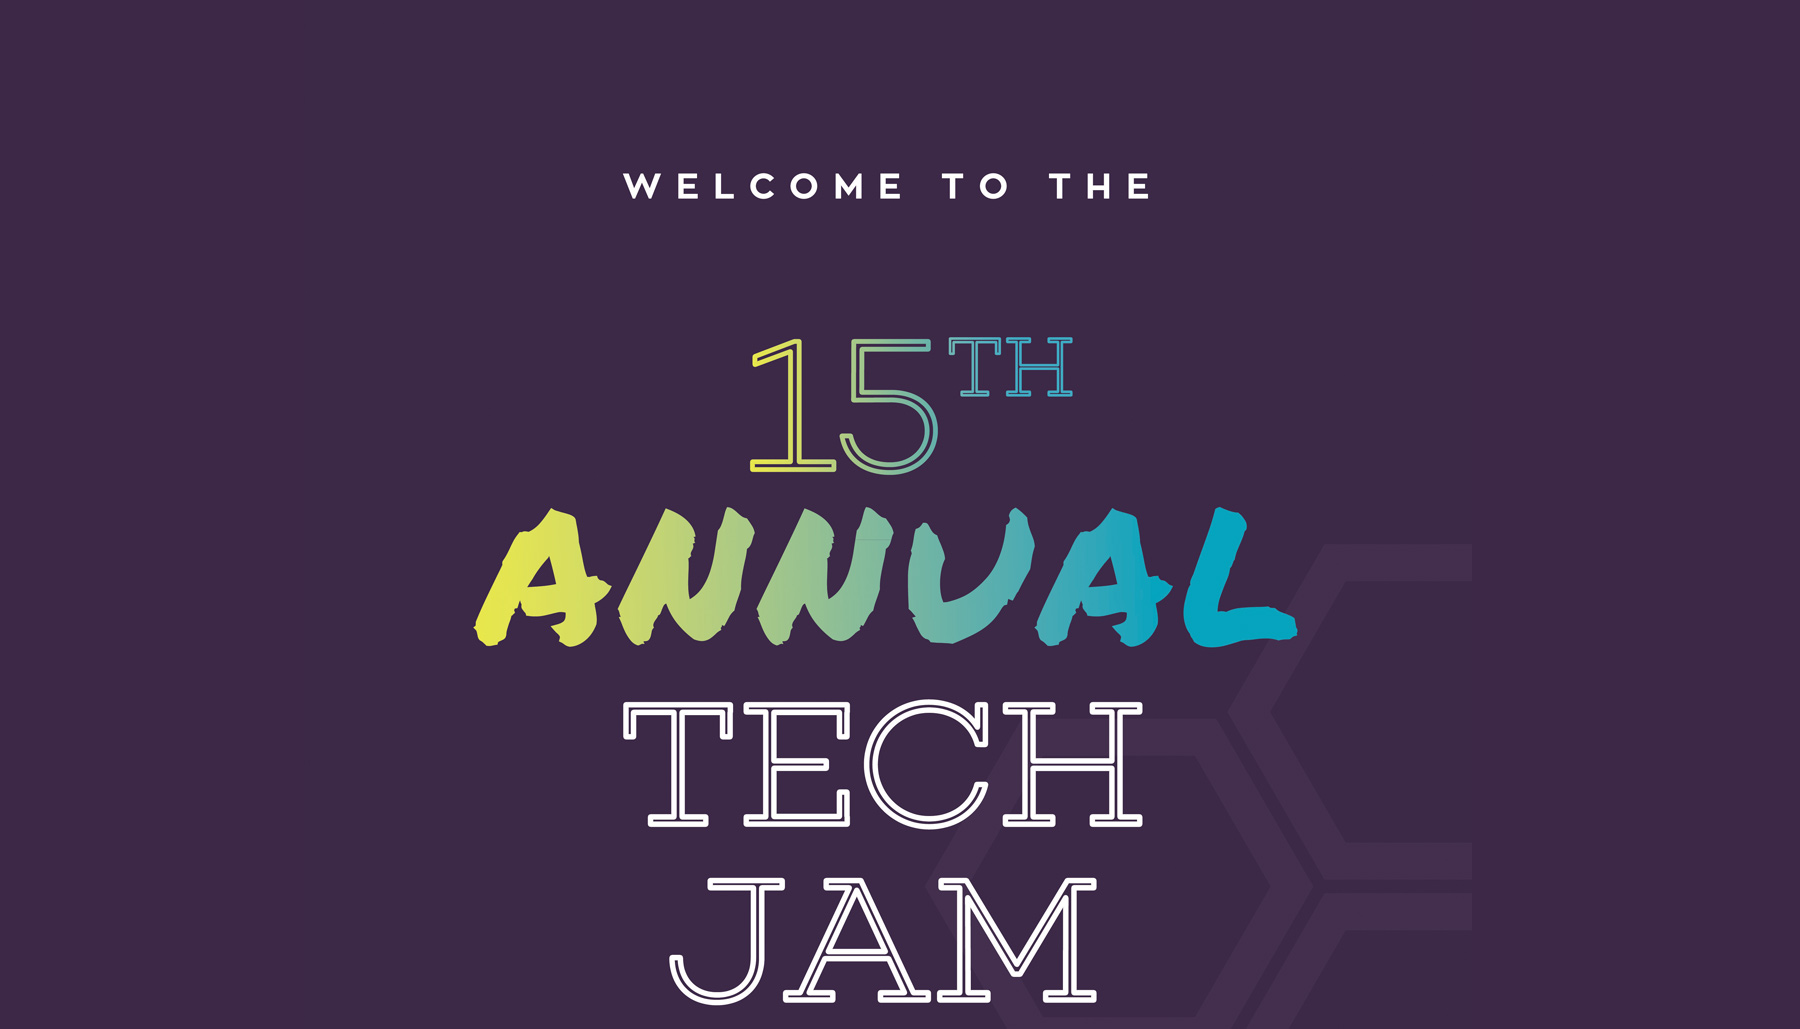 TechStart Tampa Tech Jam 2016, tech event branding, event branding and graphic design, branding technology